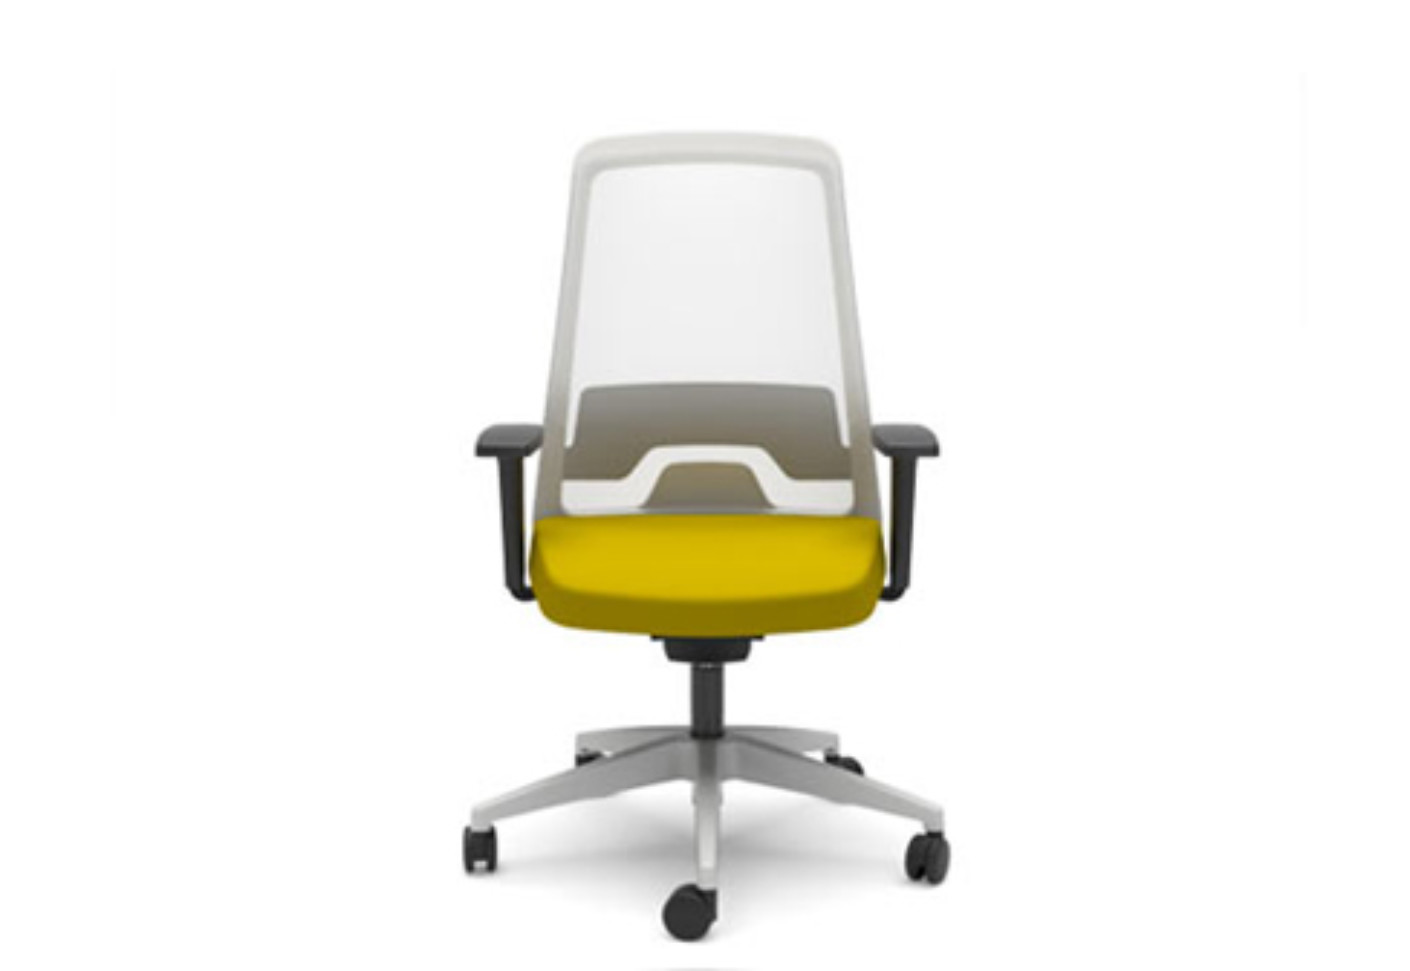 EVERYis1 swivel chair by Interstuhl